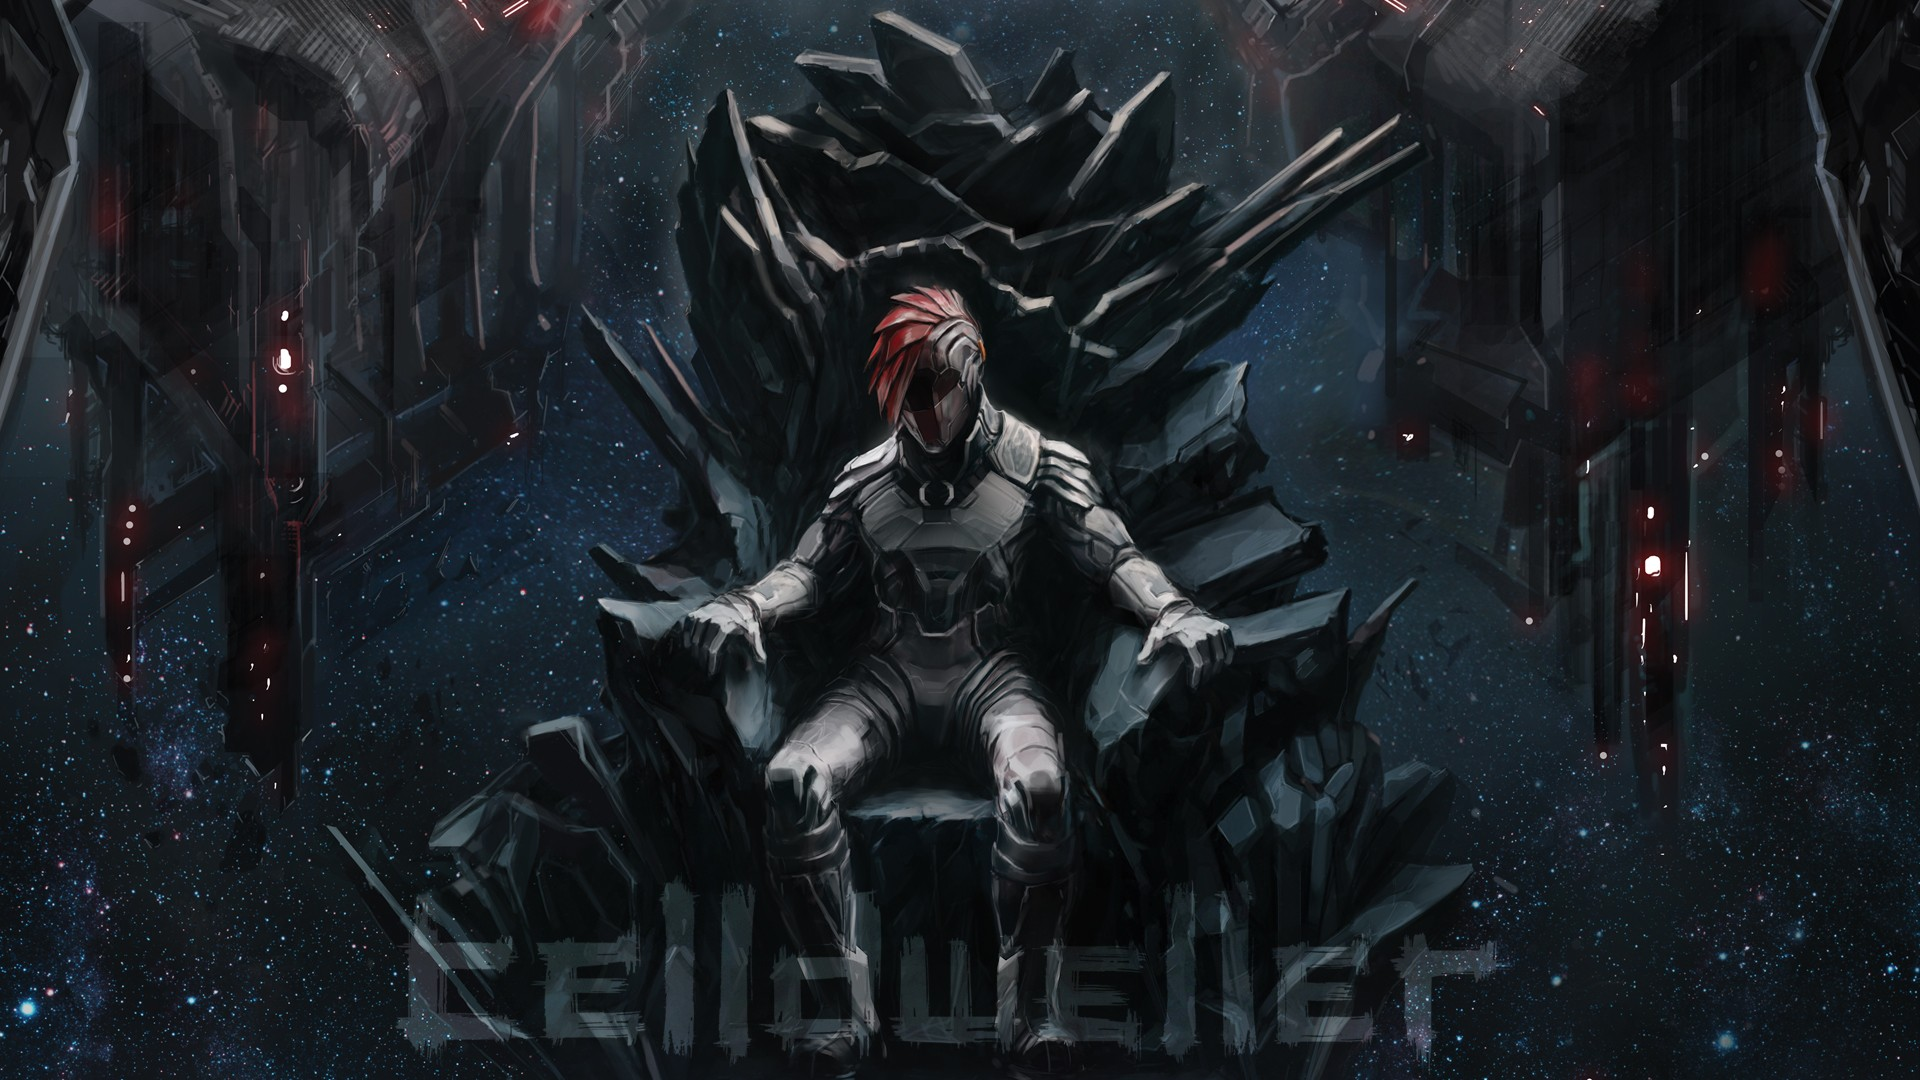 General 1920x1080 Klayton robot throne space science fiction End of an Empire